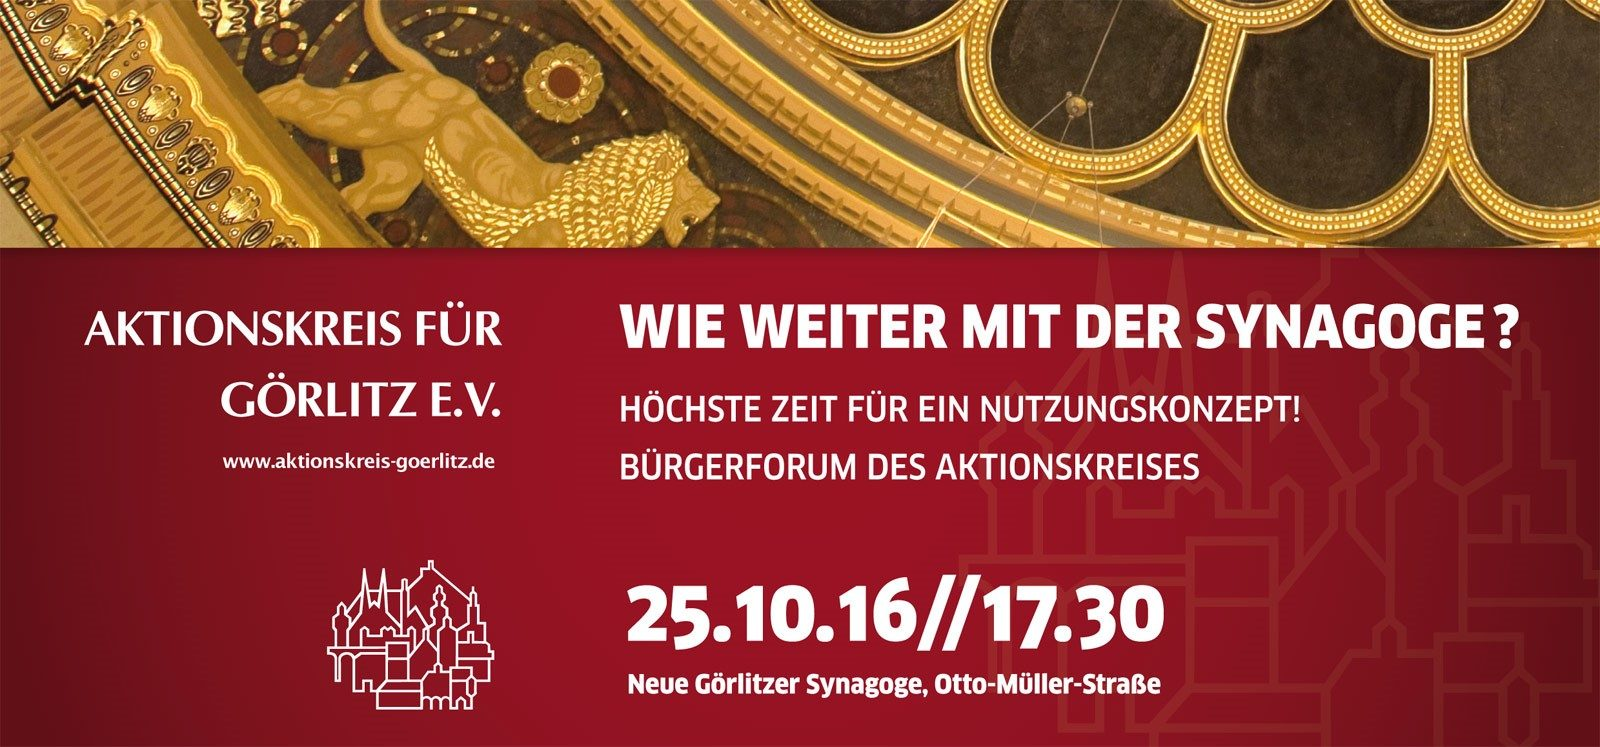 buergerforum1